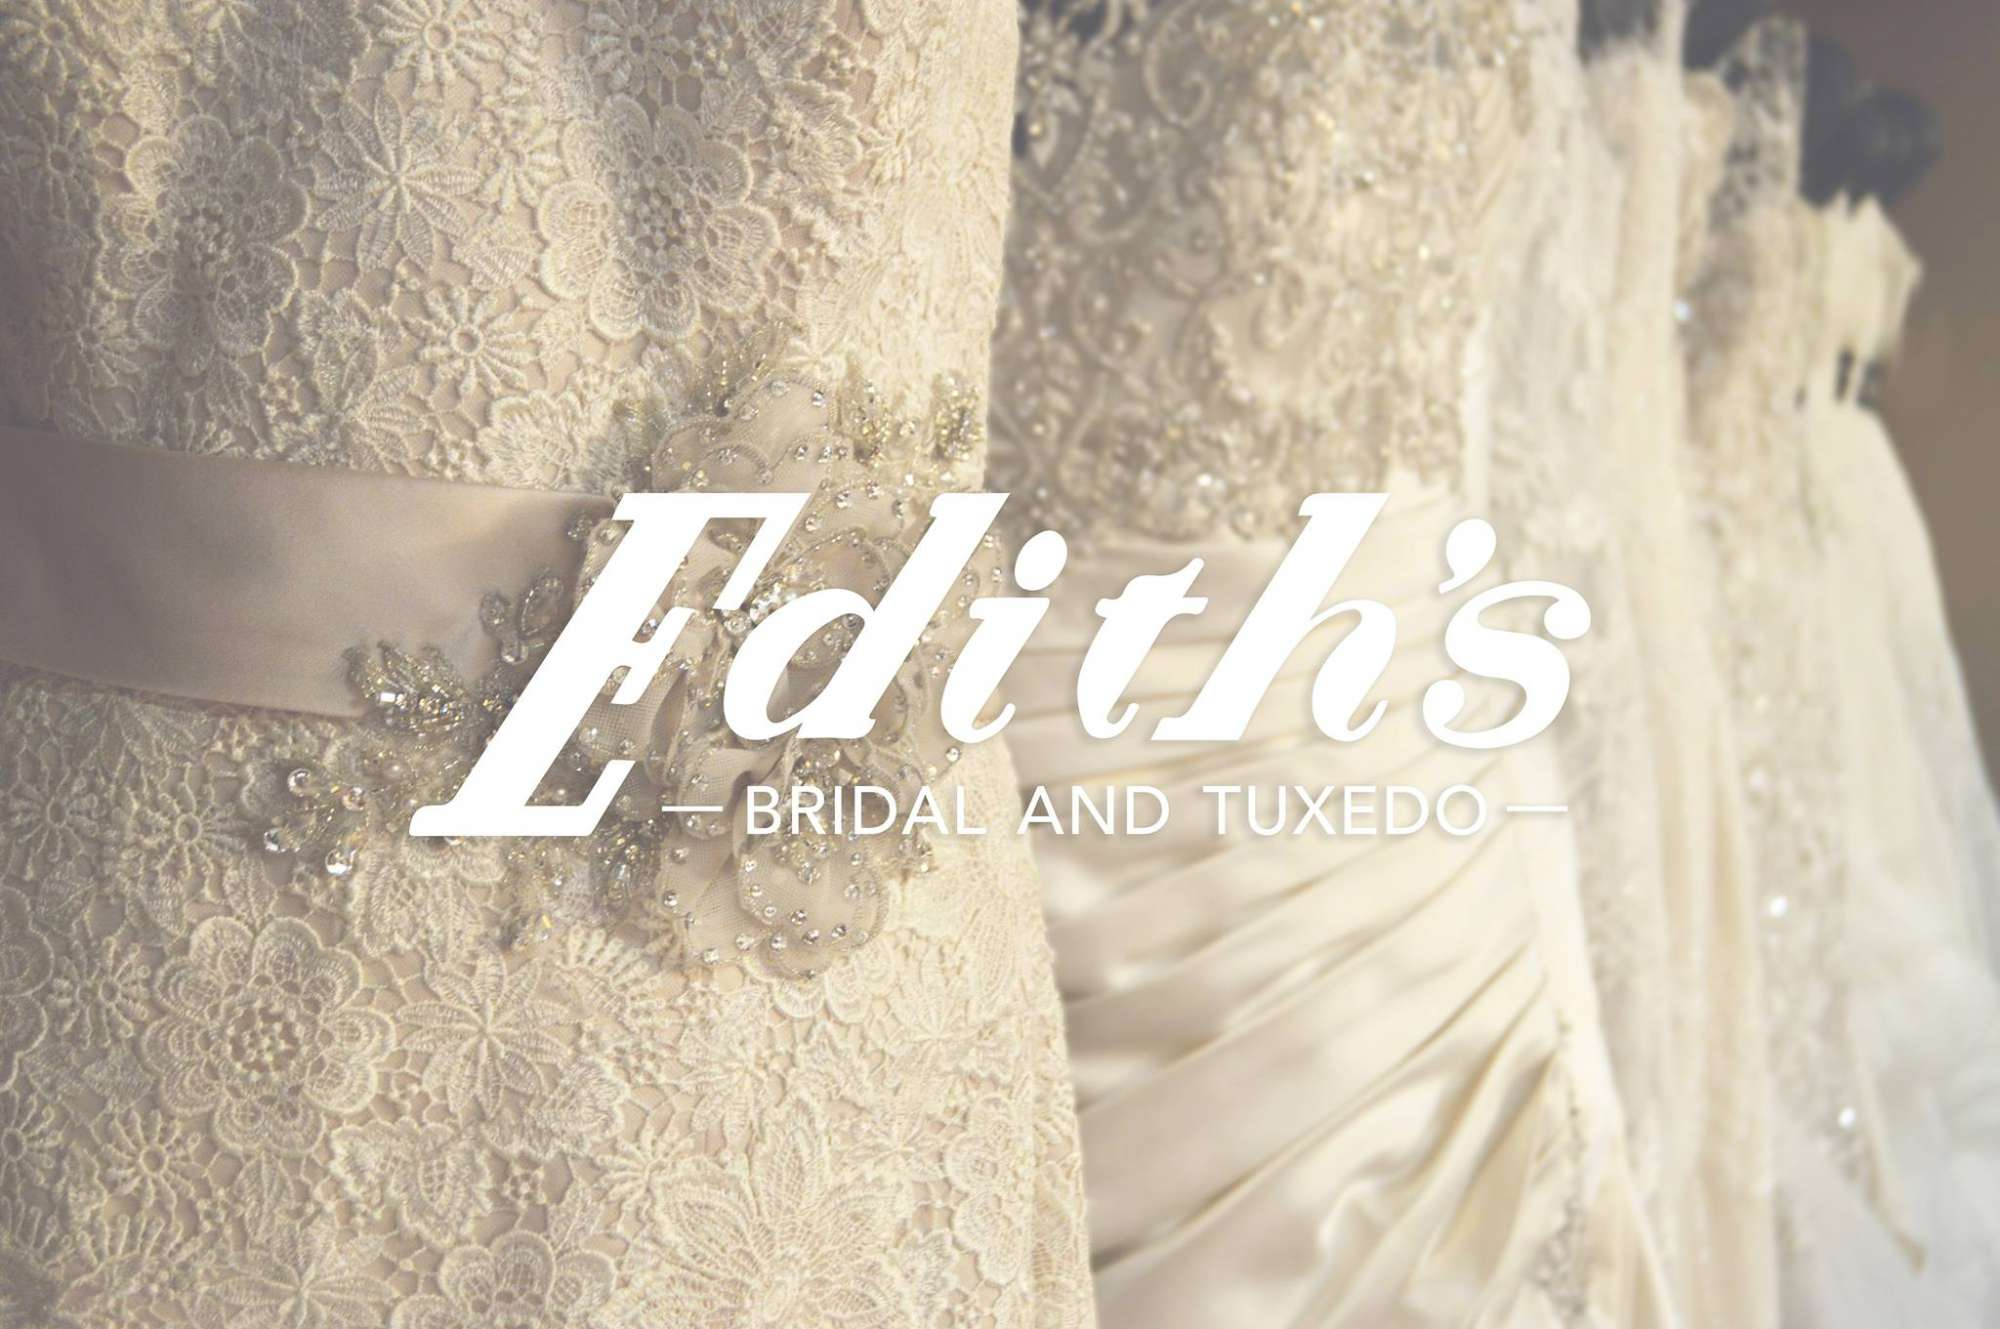 Edith S Bridal Amp Tuxedo North East Central Wisconsin